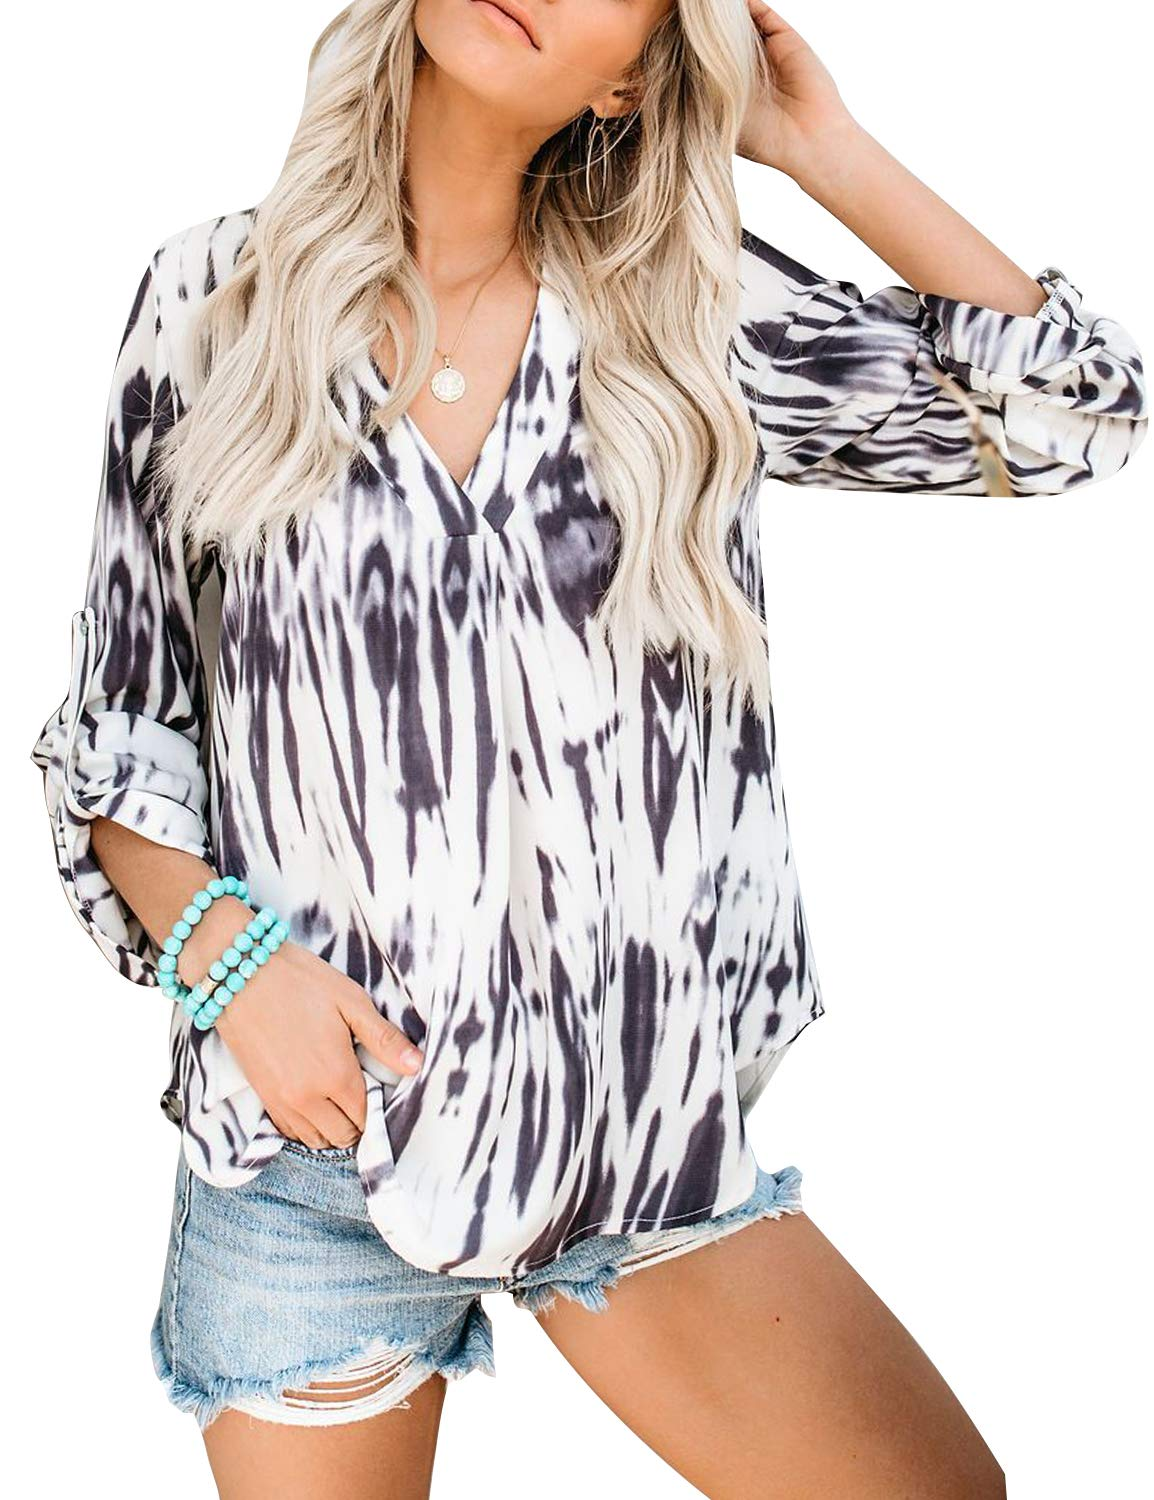 BMJL Women's Tie Dye Top Loose Blouse Long Sleeve V Neck T Shirt